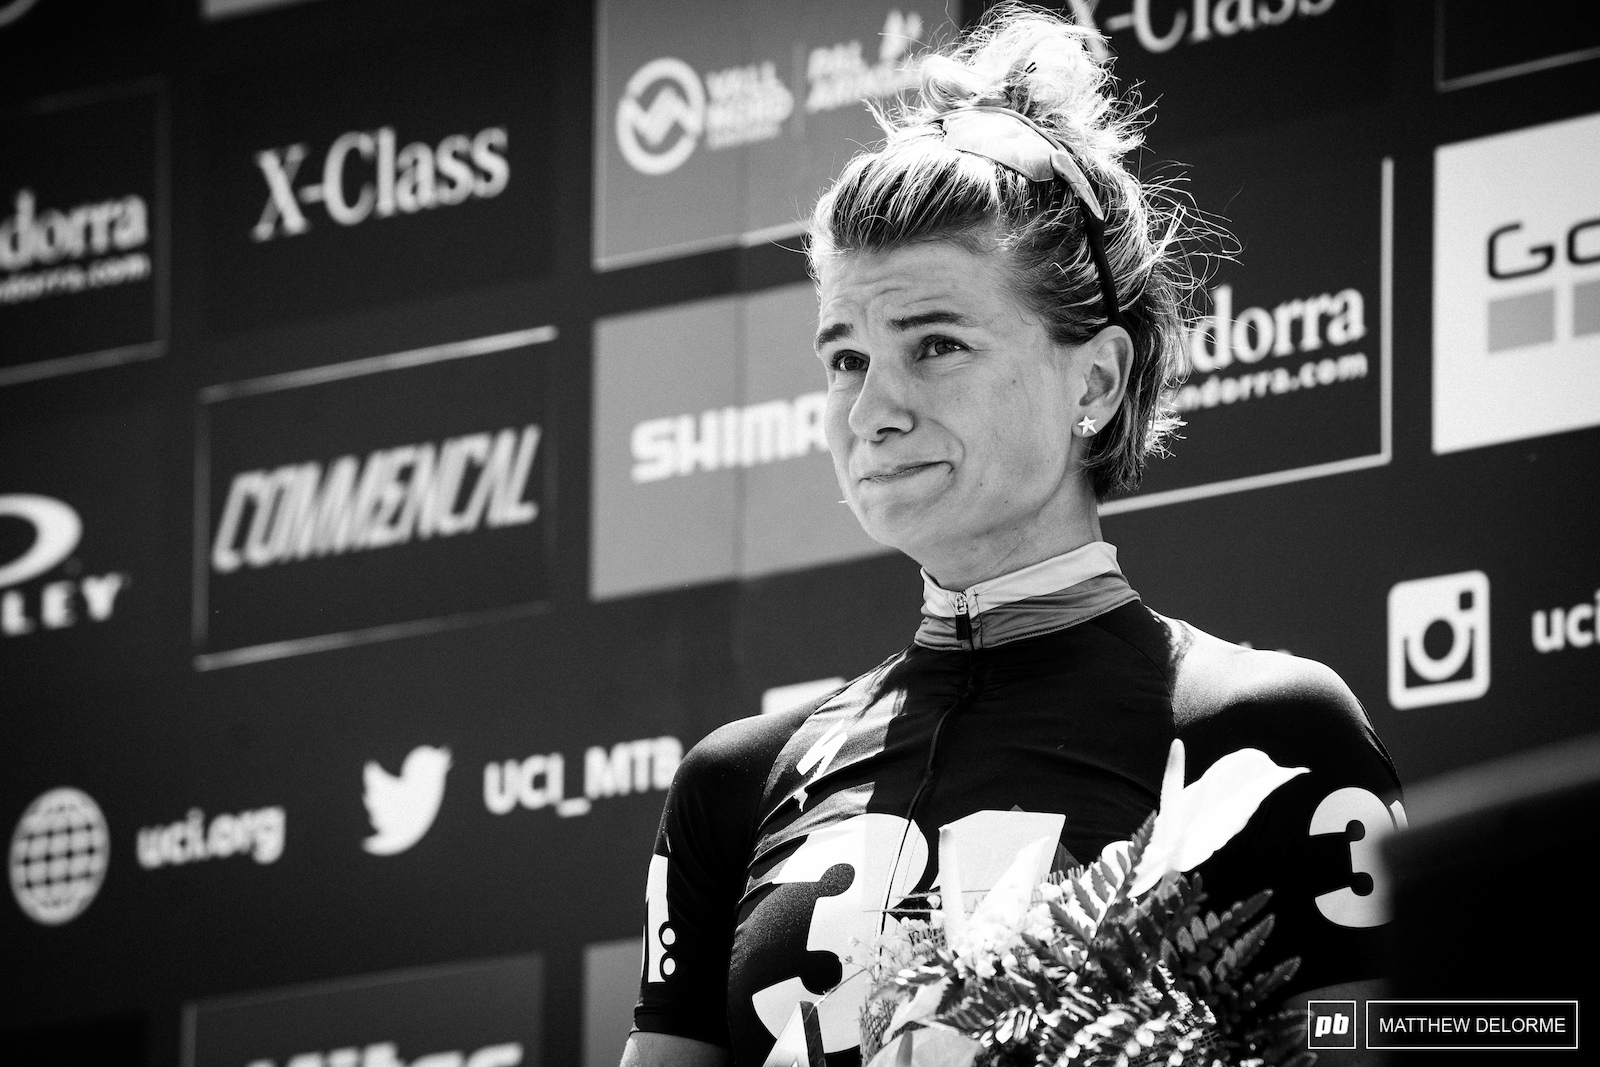 An emotional day for Jenny Rissveds and a much deserved podium.